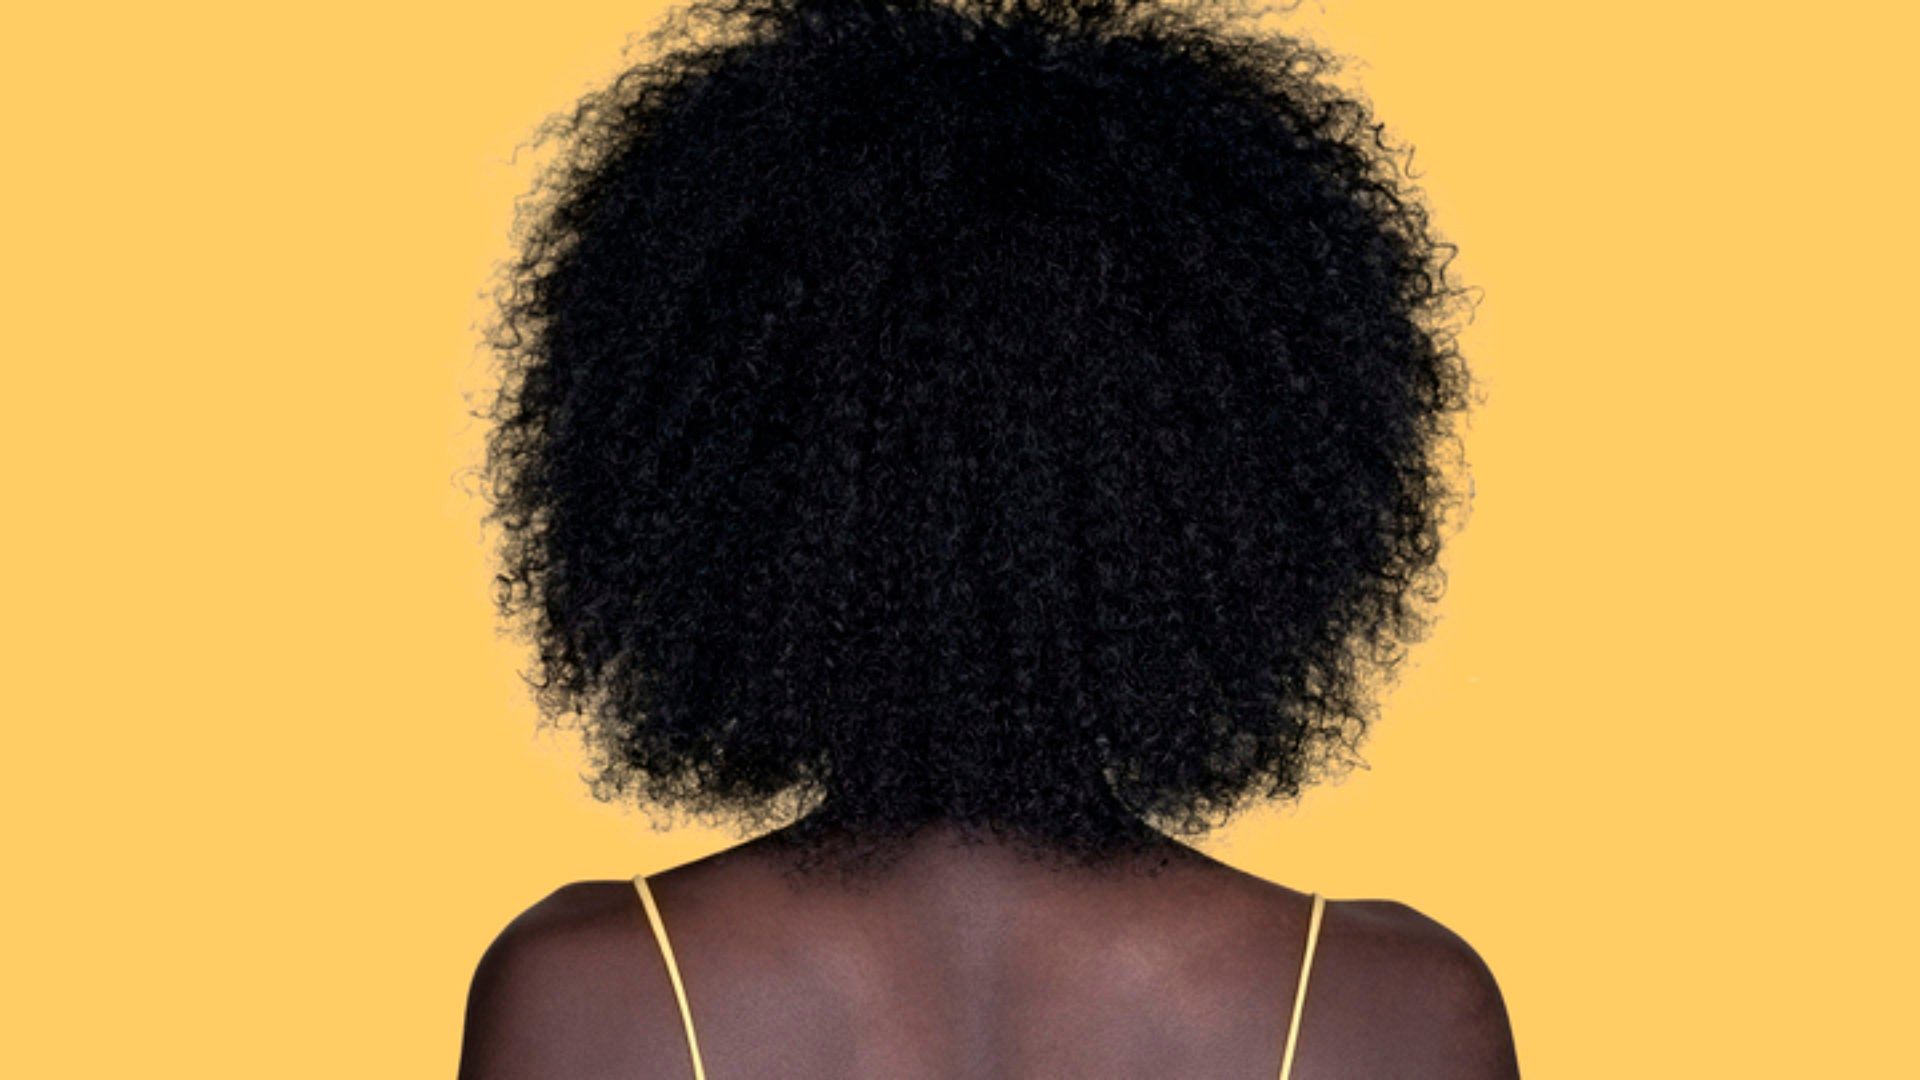 The Tignon Laws Set The Precedent For The Appropriation and Misconception Around Black Hair